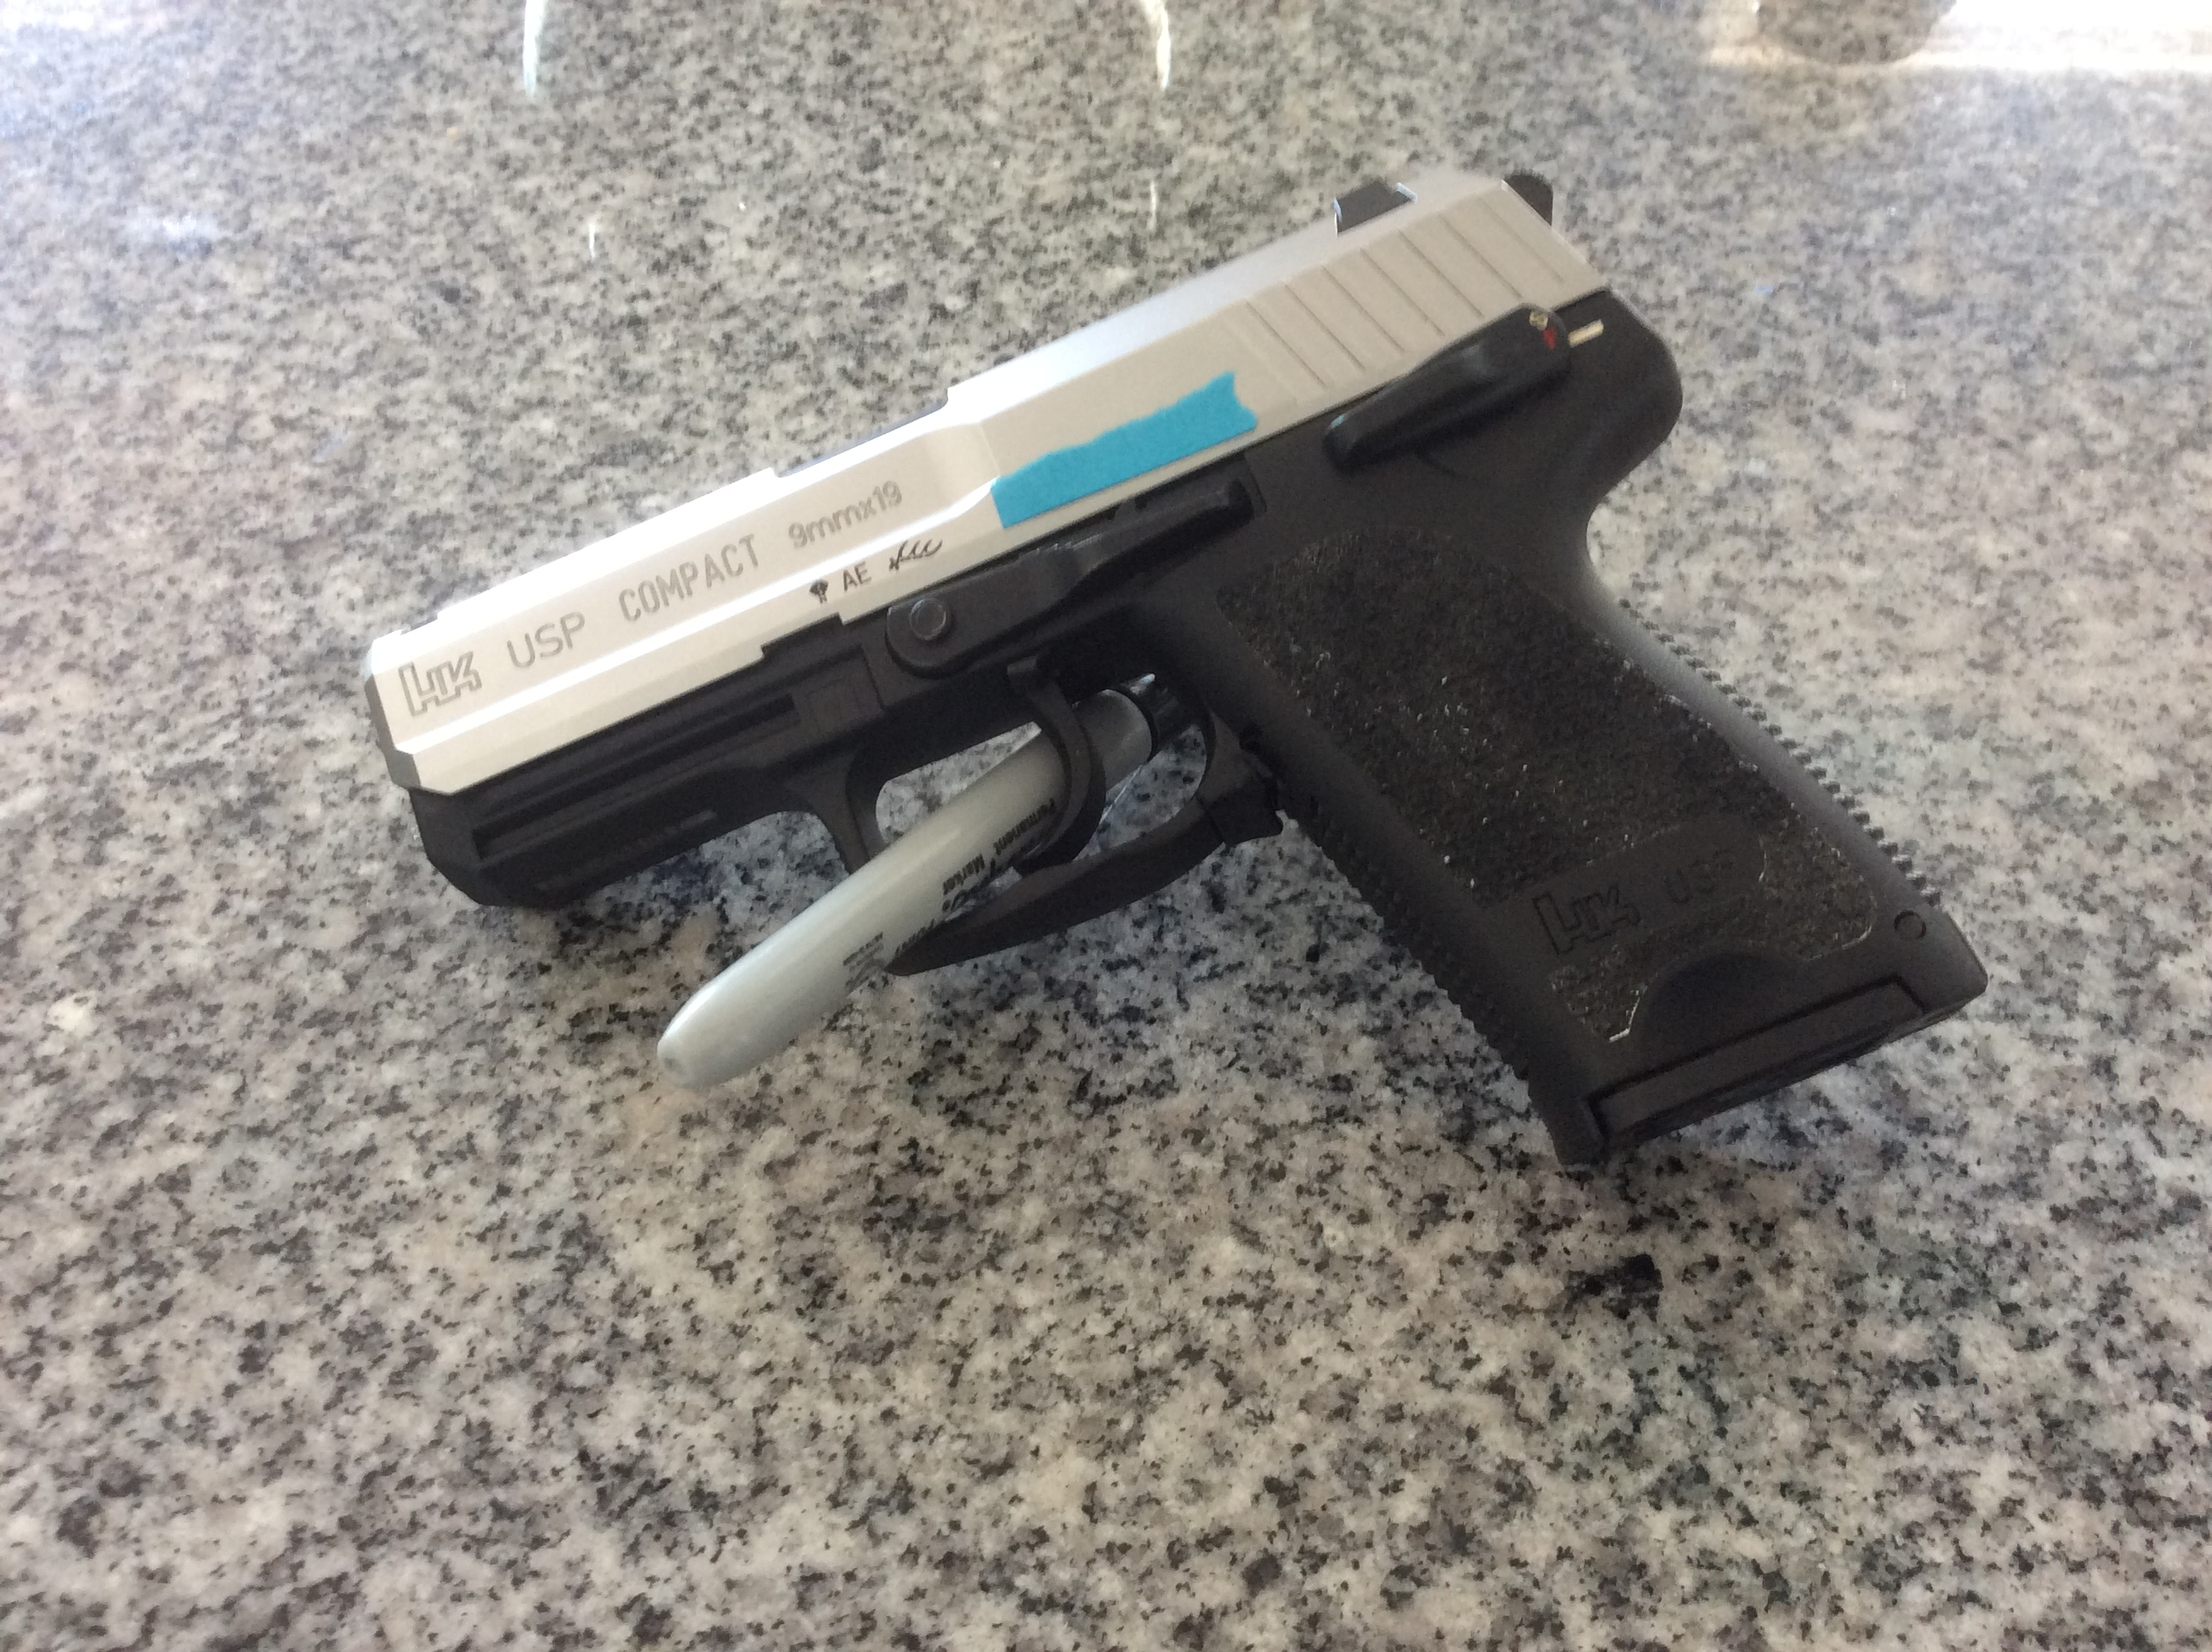 Let's See Your USP's!-img_0520.jpg